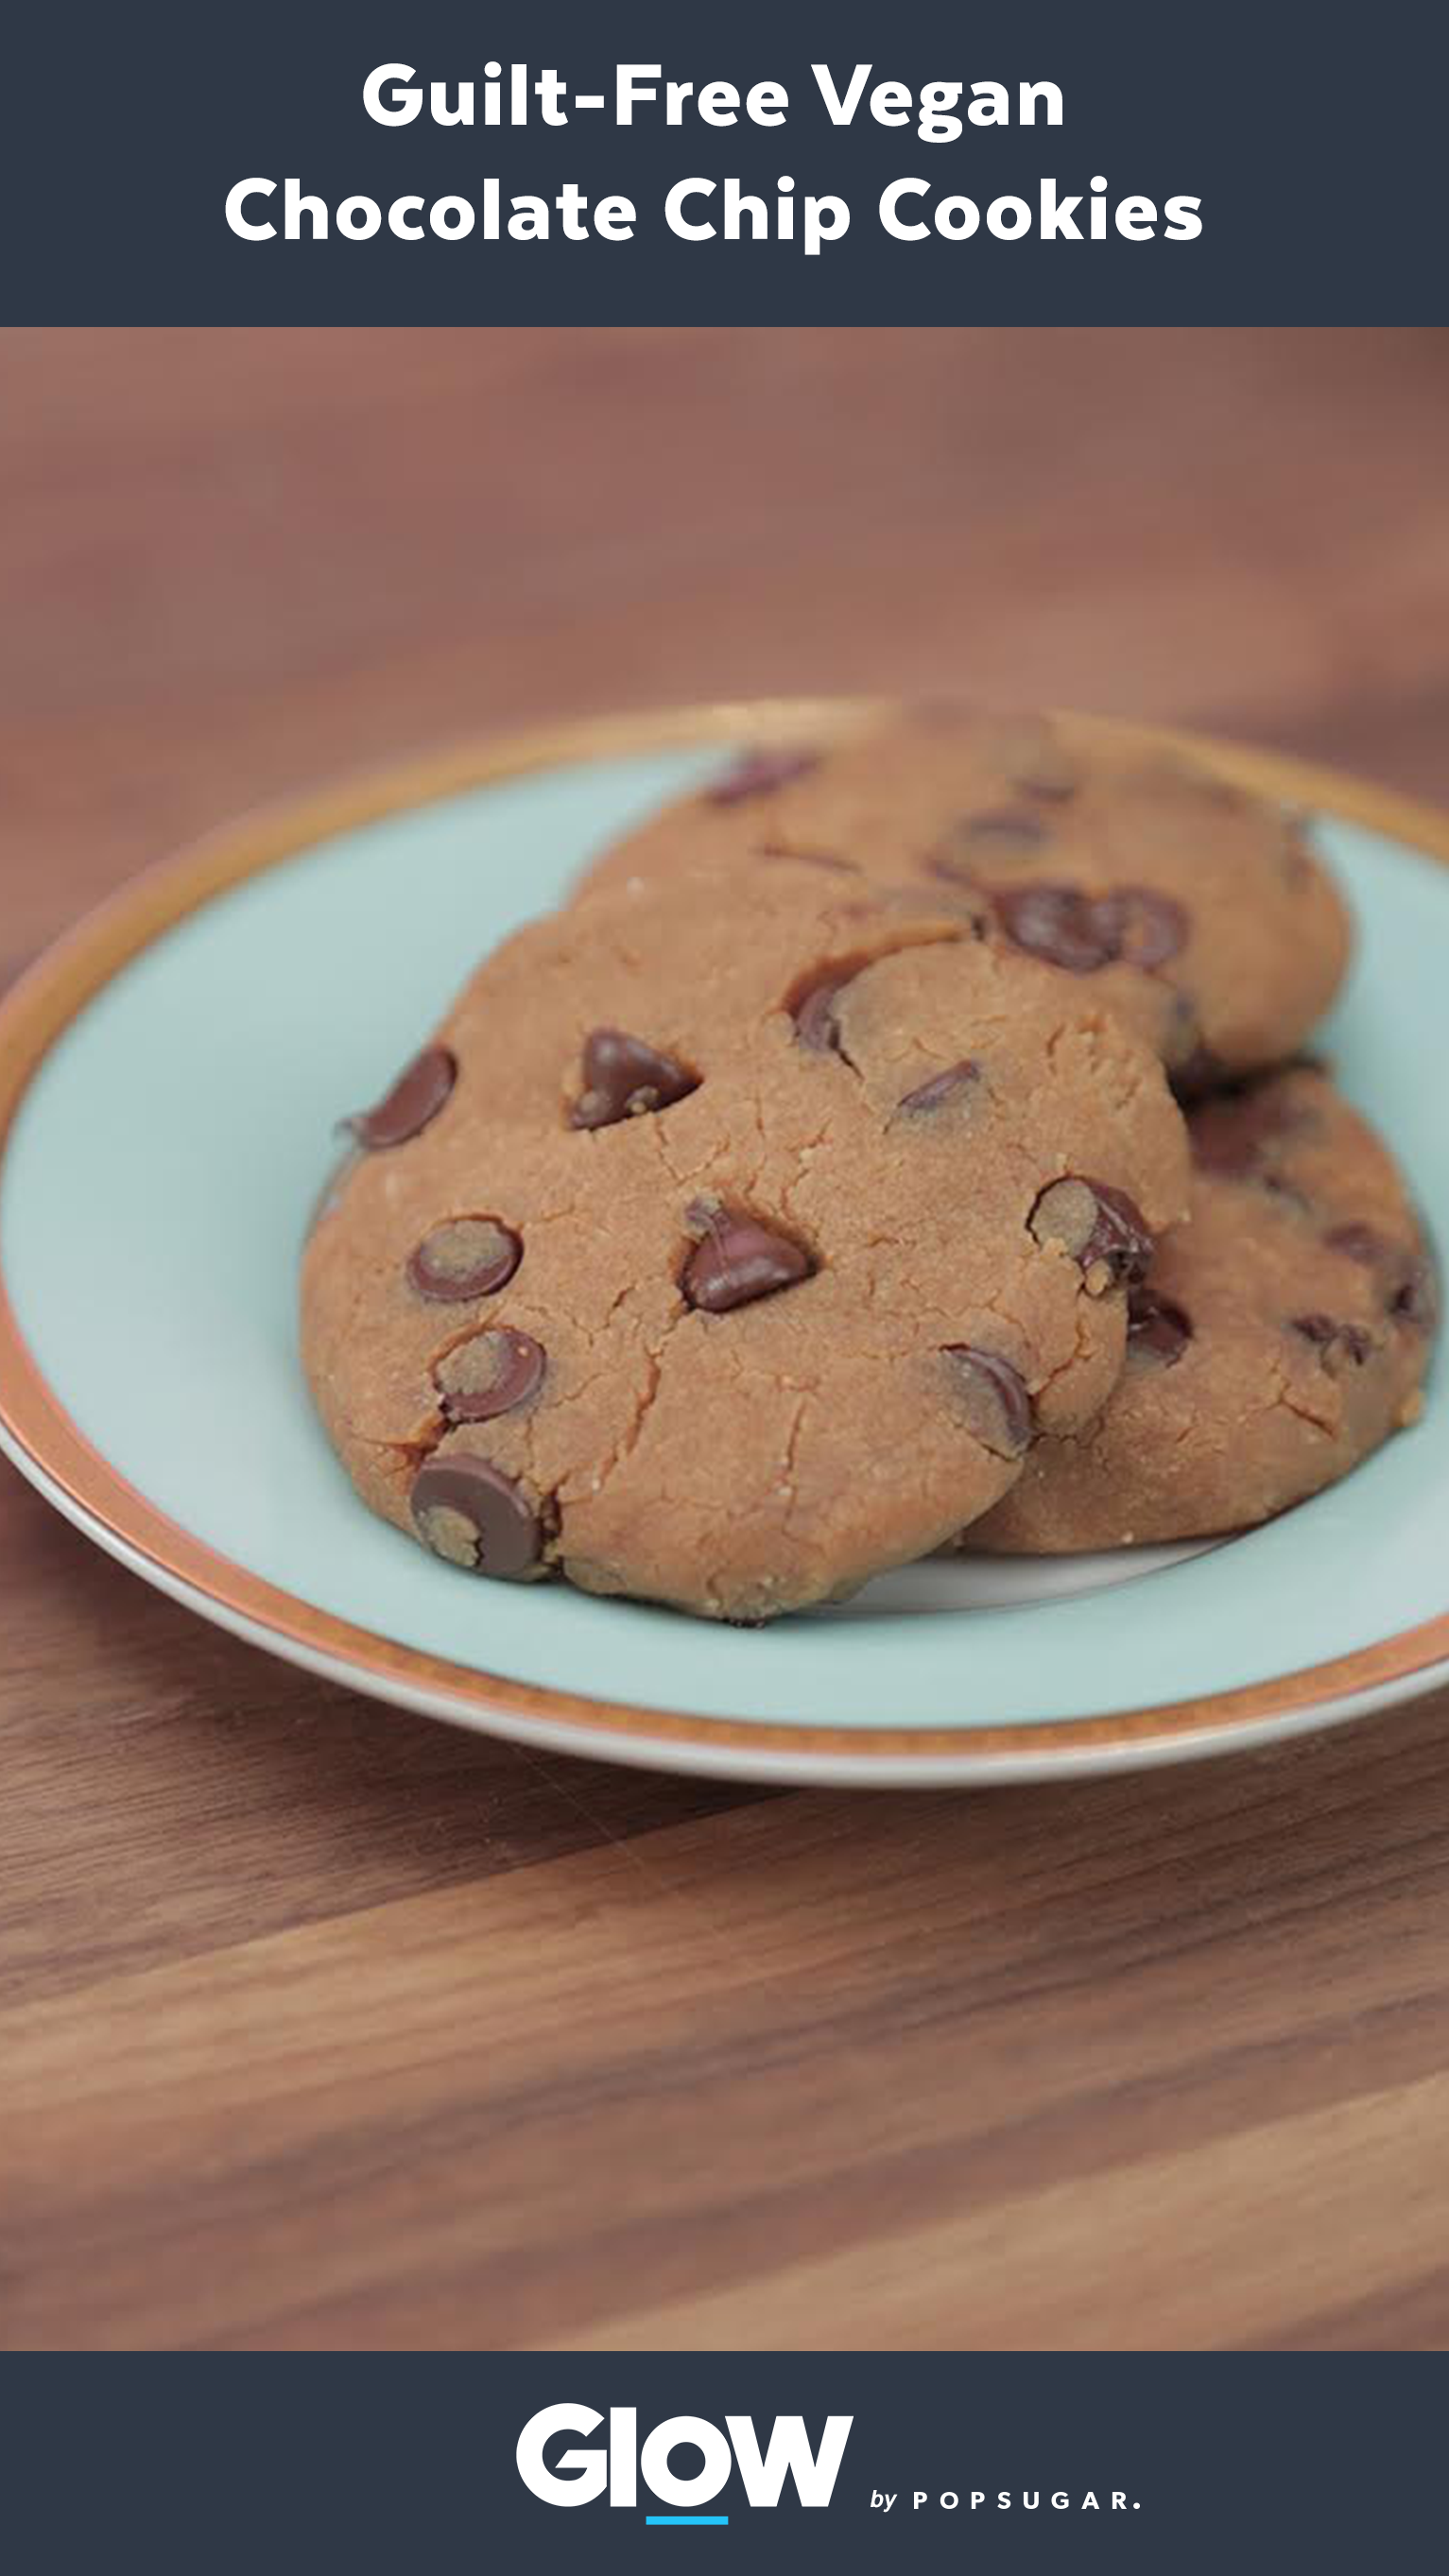 Vegan Oatmeal Chocolate Chip Cookies Gluten Free Crowded Kitchen Recipe In 2020 Oatmeal Chocolate Chip Cookies Chocolate Chip Cookies Chocolate Chip Oatmeal